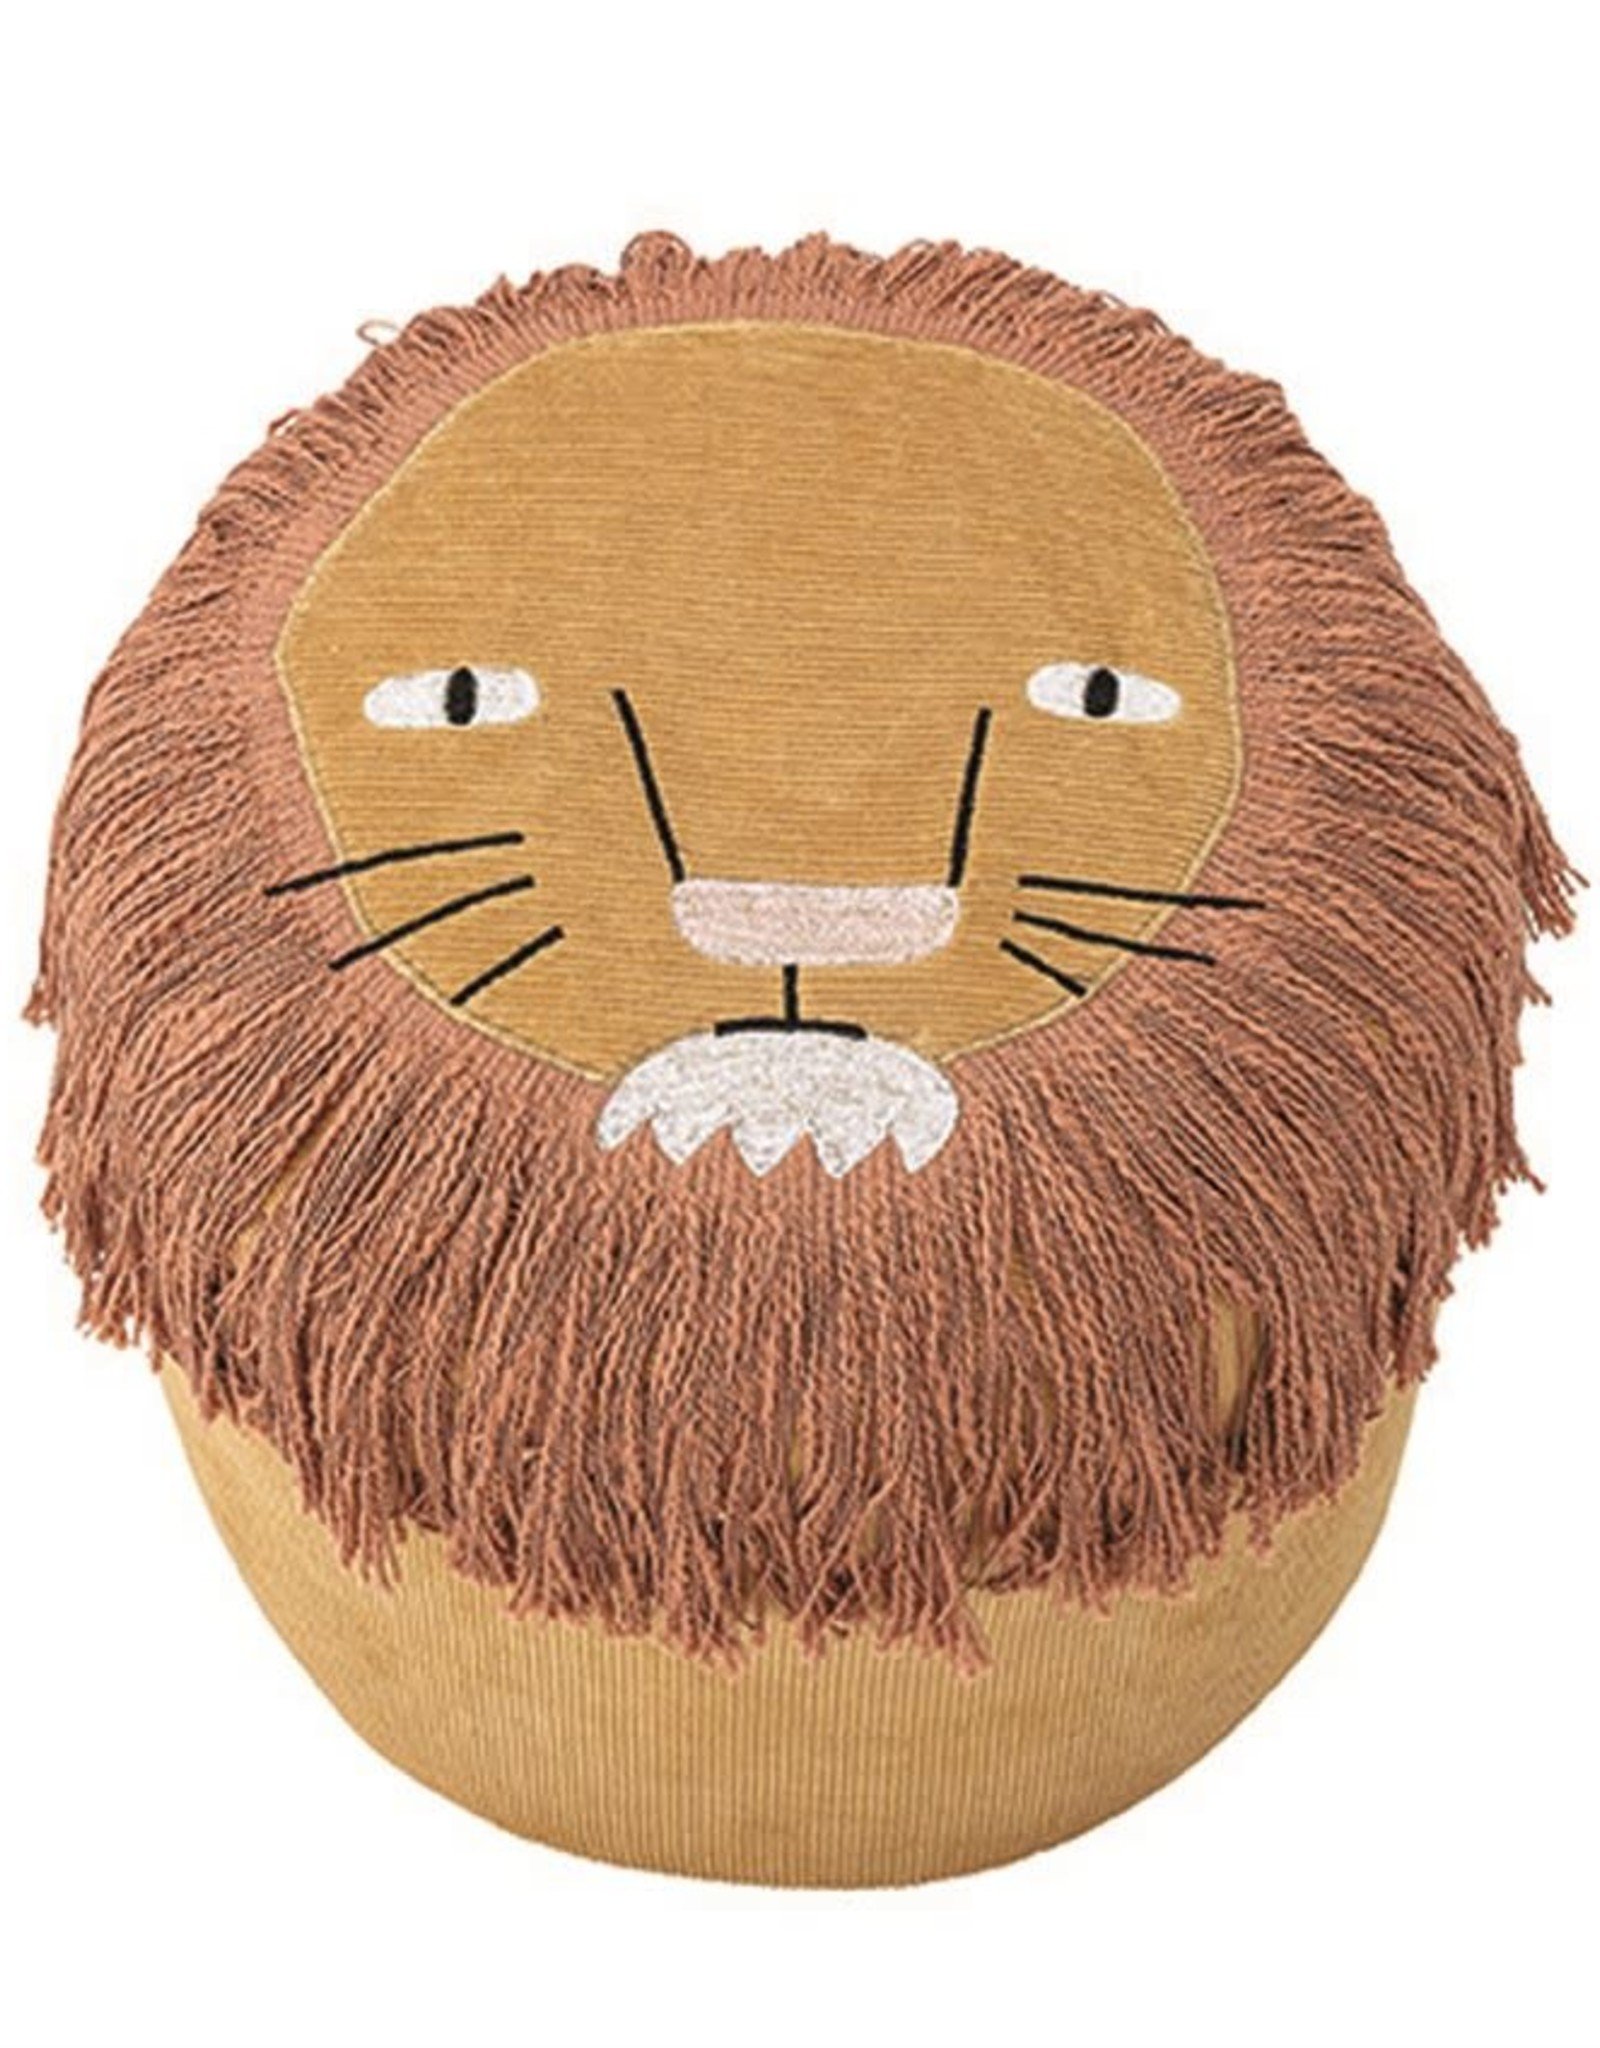 Bloomingville Corduroy embroidered pouf - Lion